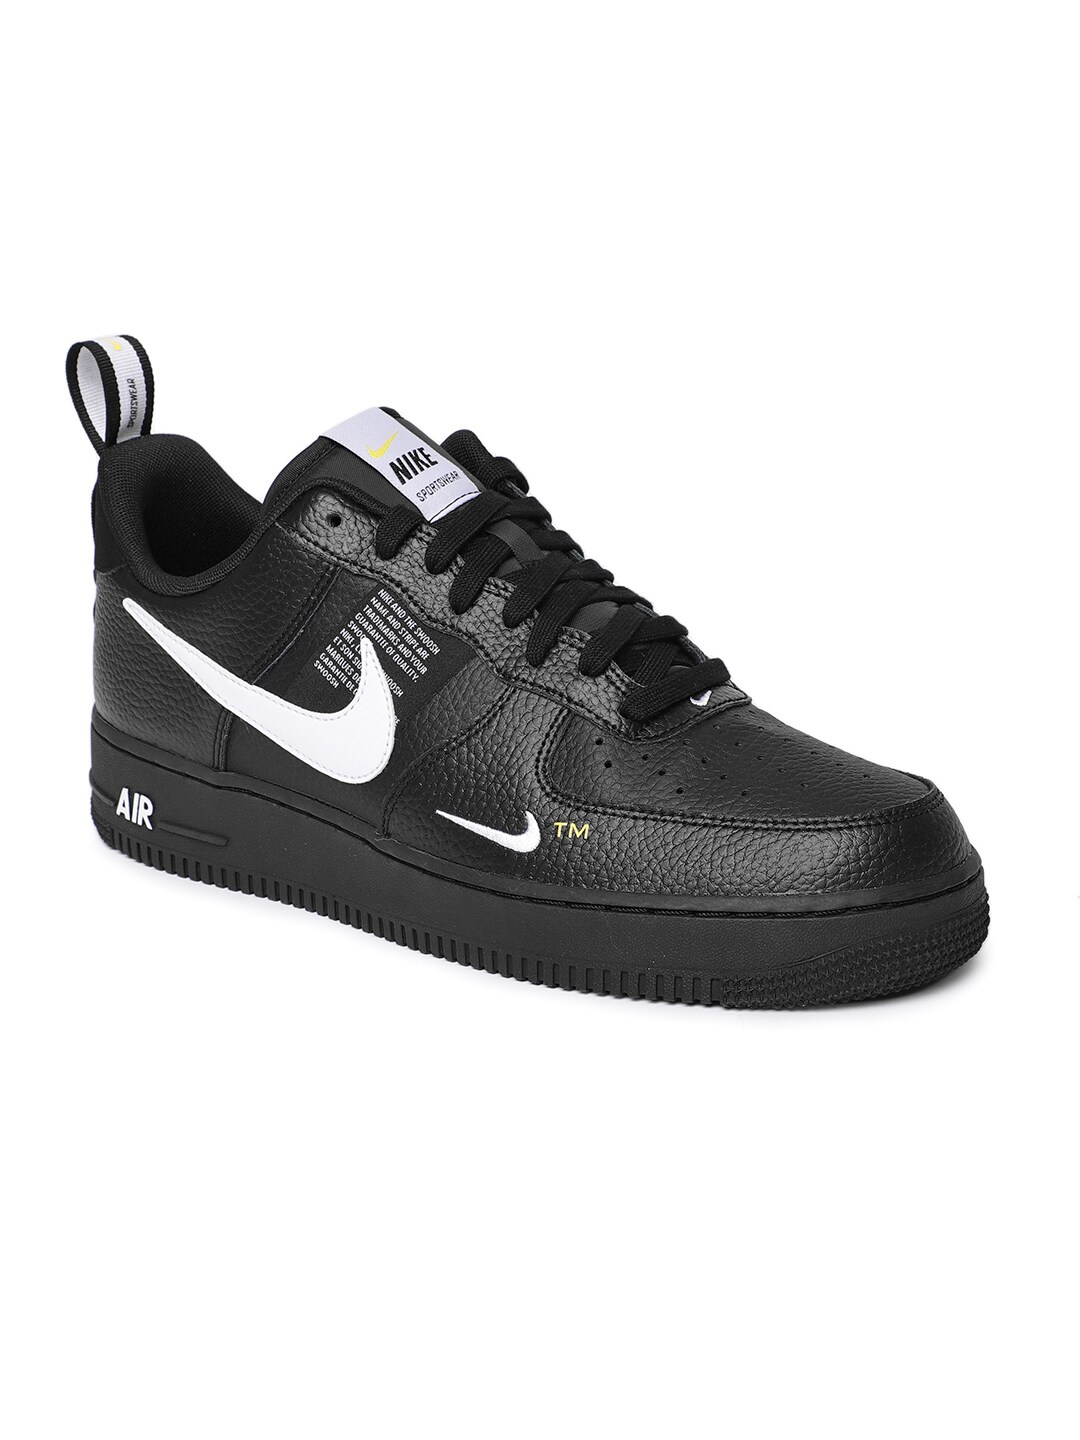 timeless design e8d53 ea897 Nike Air Force 1 Casual Shoes - Buy Nike Air Force 1 Casual Shoes online in  India